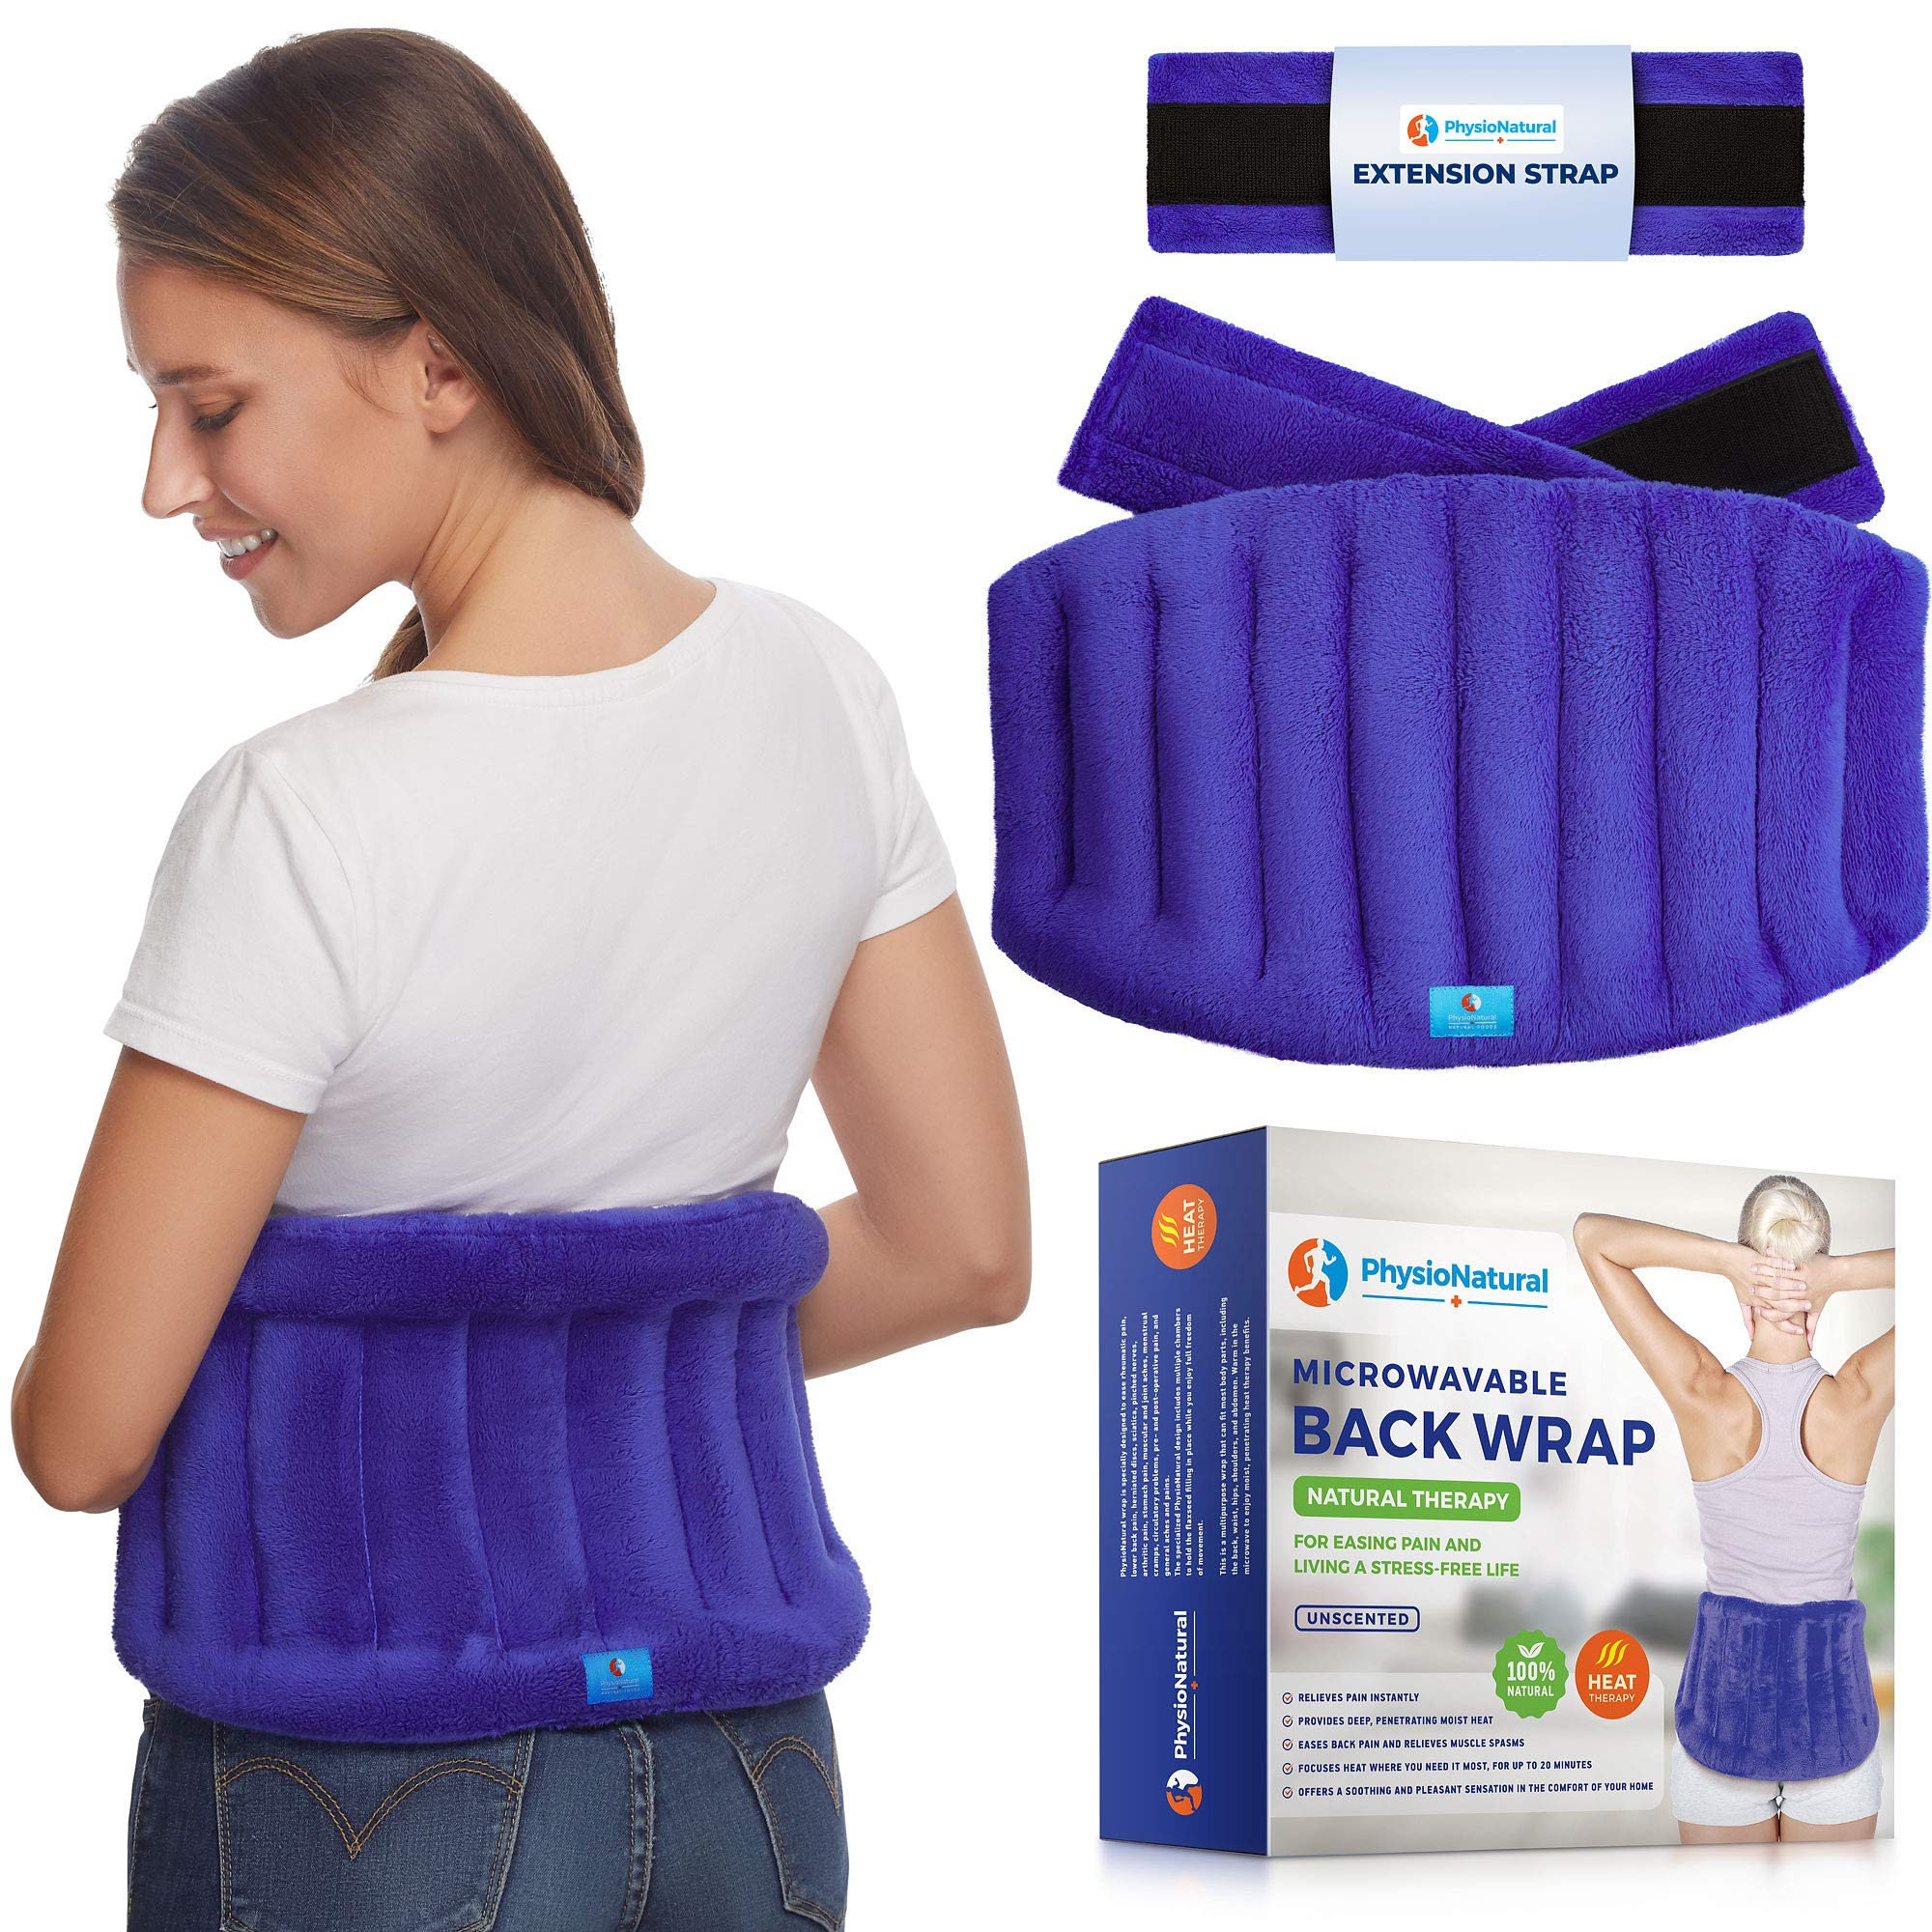 Microwavable Extra Large Heating Wrap for Lower Back Pain - Moist Heat Therapy Pad for Instant Relief in Case of Aches, Muscle Spasms, Pinched Nerves, Slipped Discs, Fibromyalgia, and Surgery Recovery by PhysioNatural